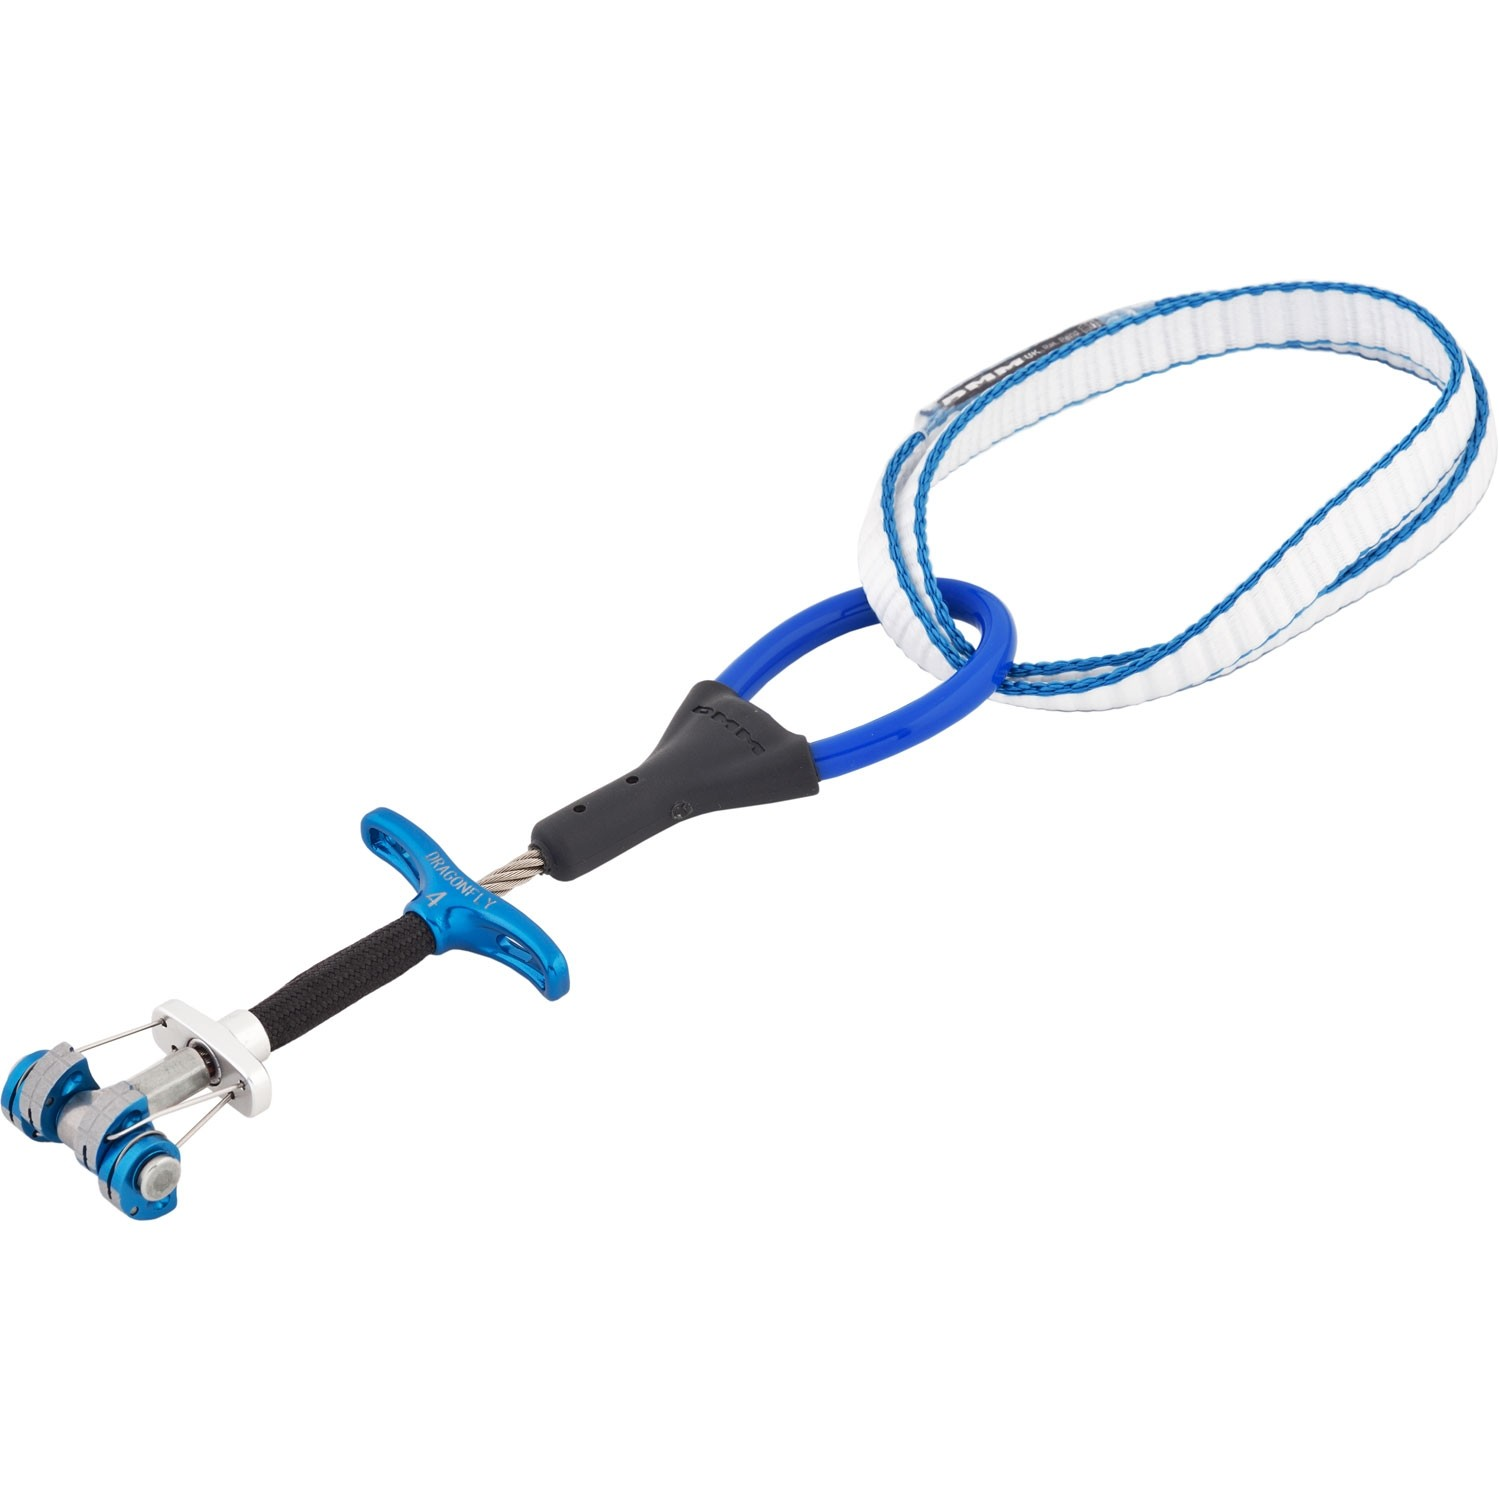 DMM Dragonfly Micro Cam - Size 4 - Blue